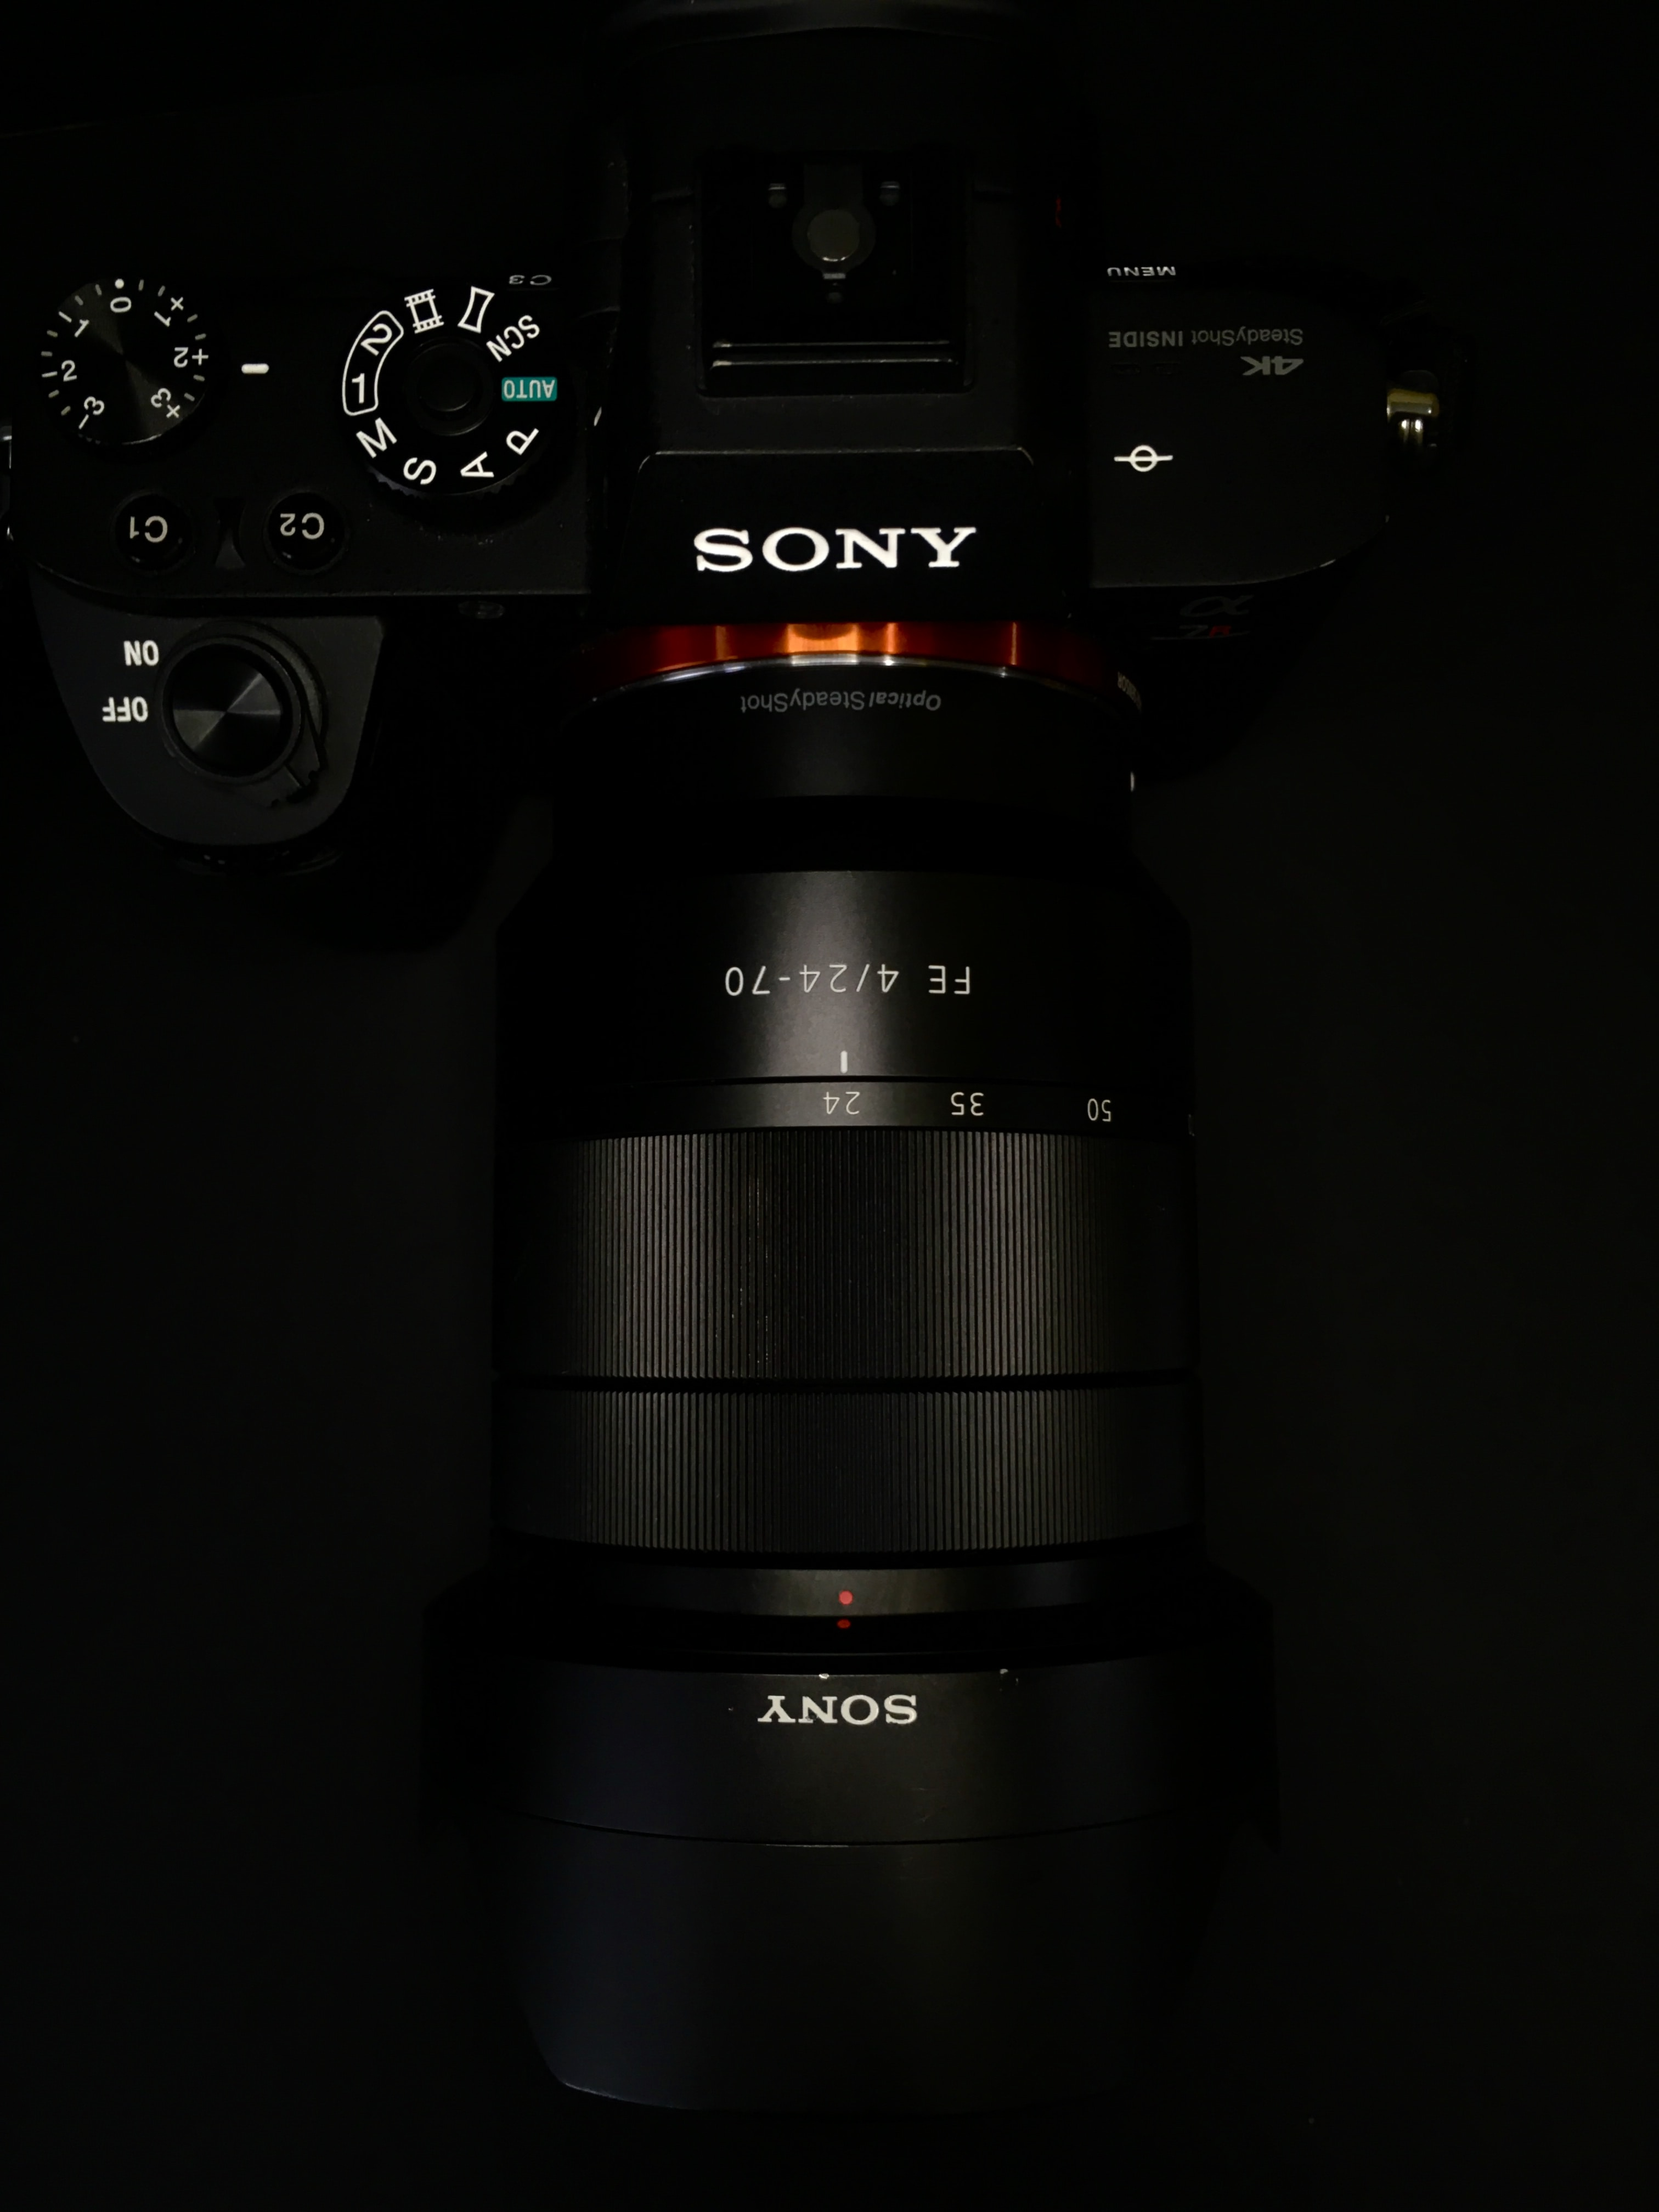 Sony Rumors Four New Sigma Lenses image